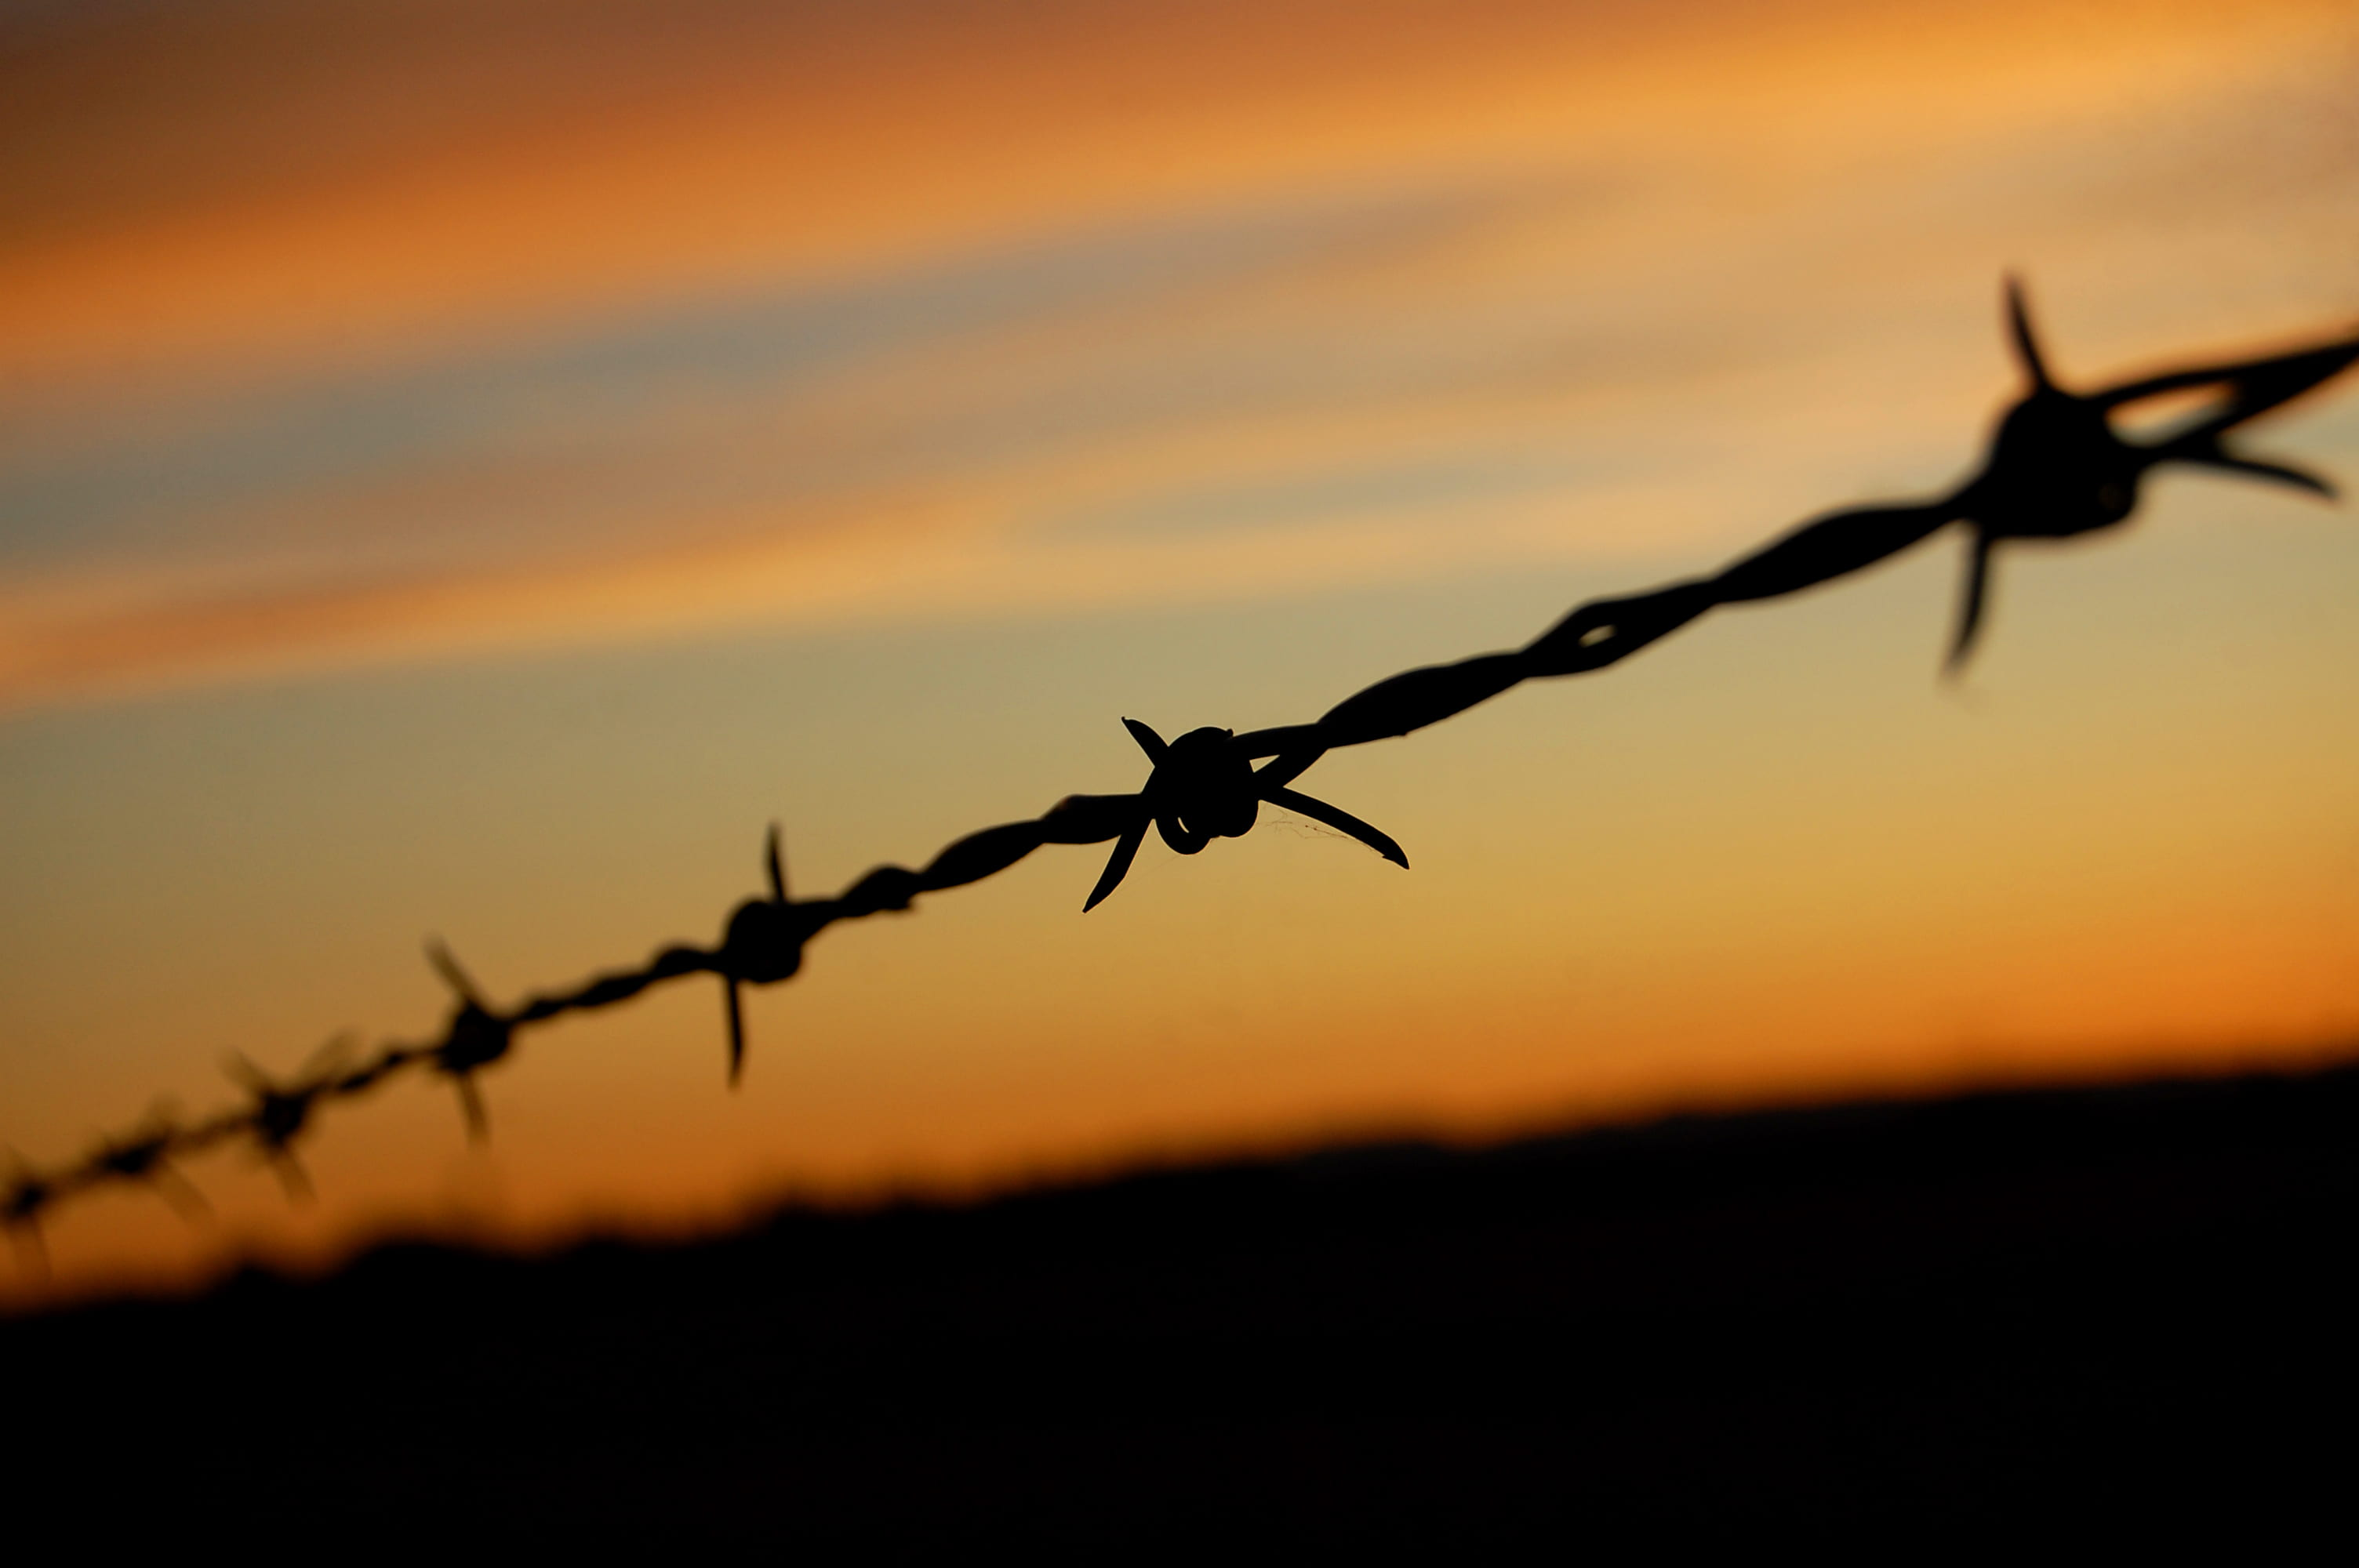 Barbwire fence. Source: Edmund Garman, Creative Commons